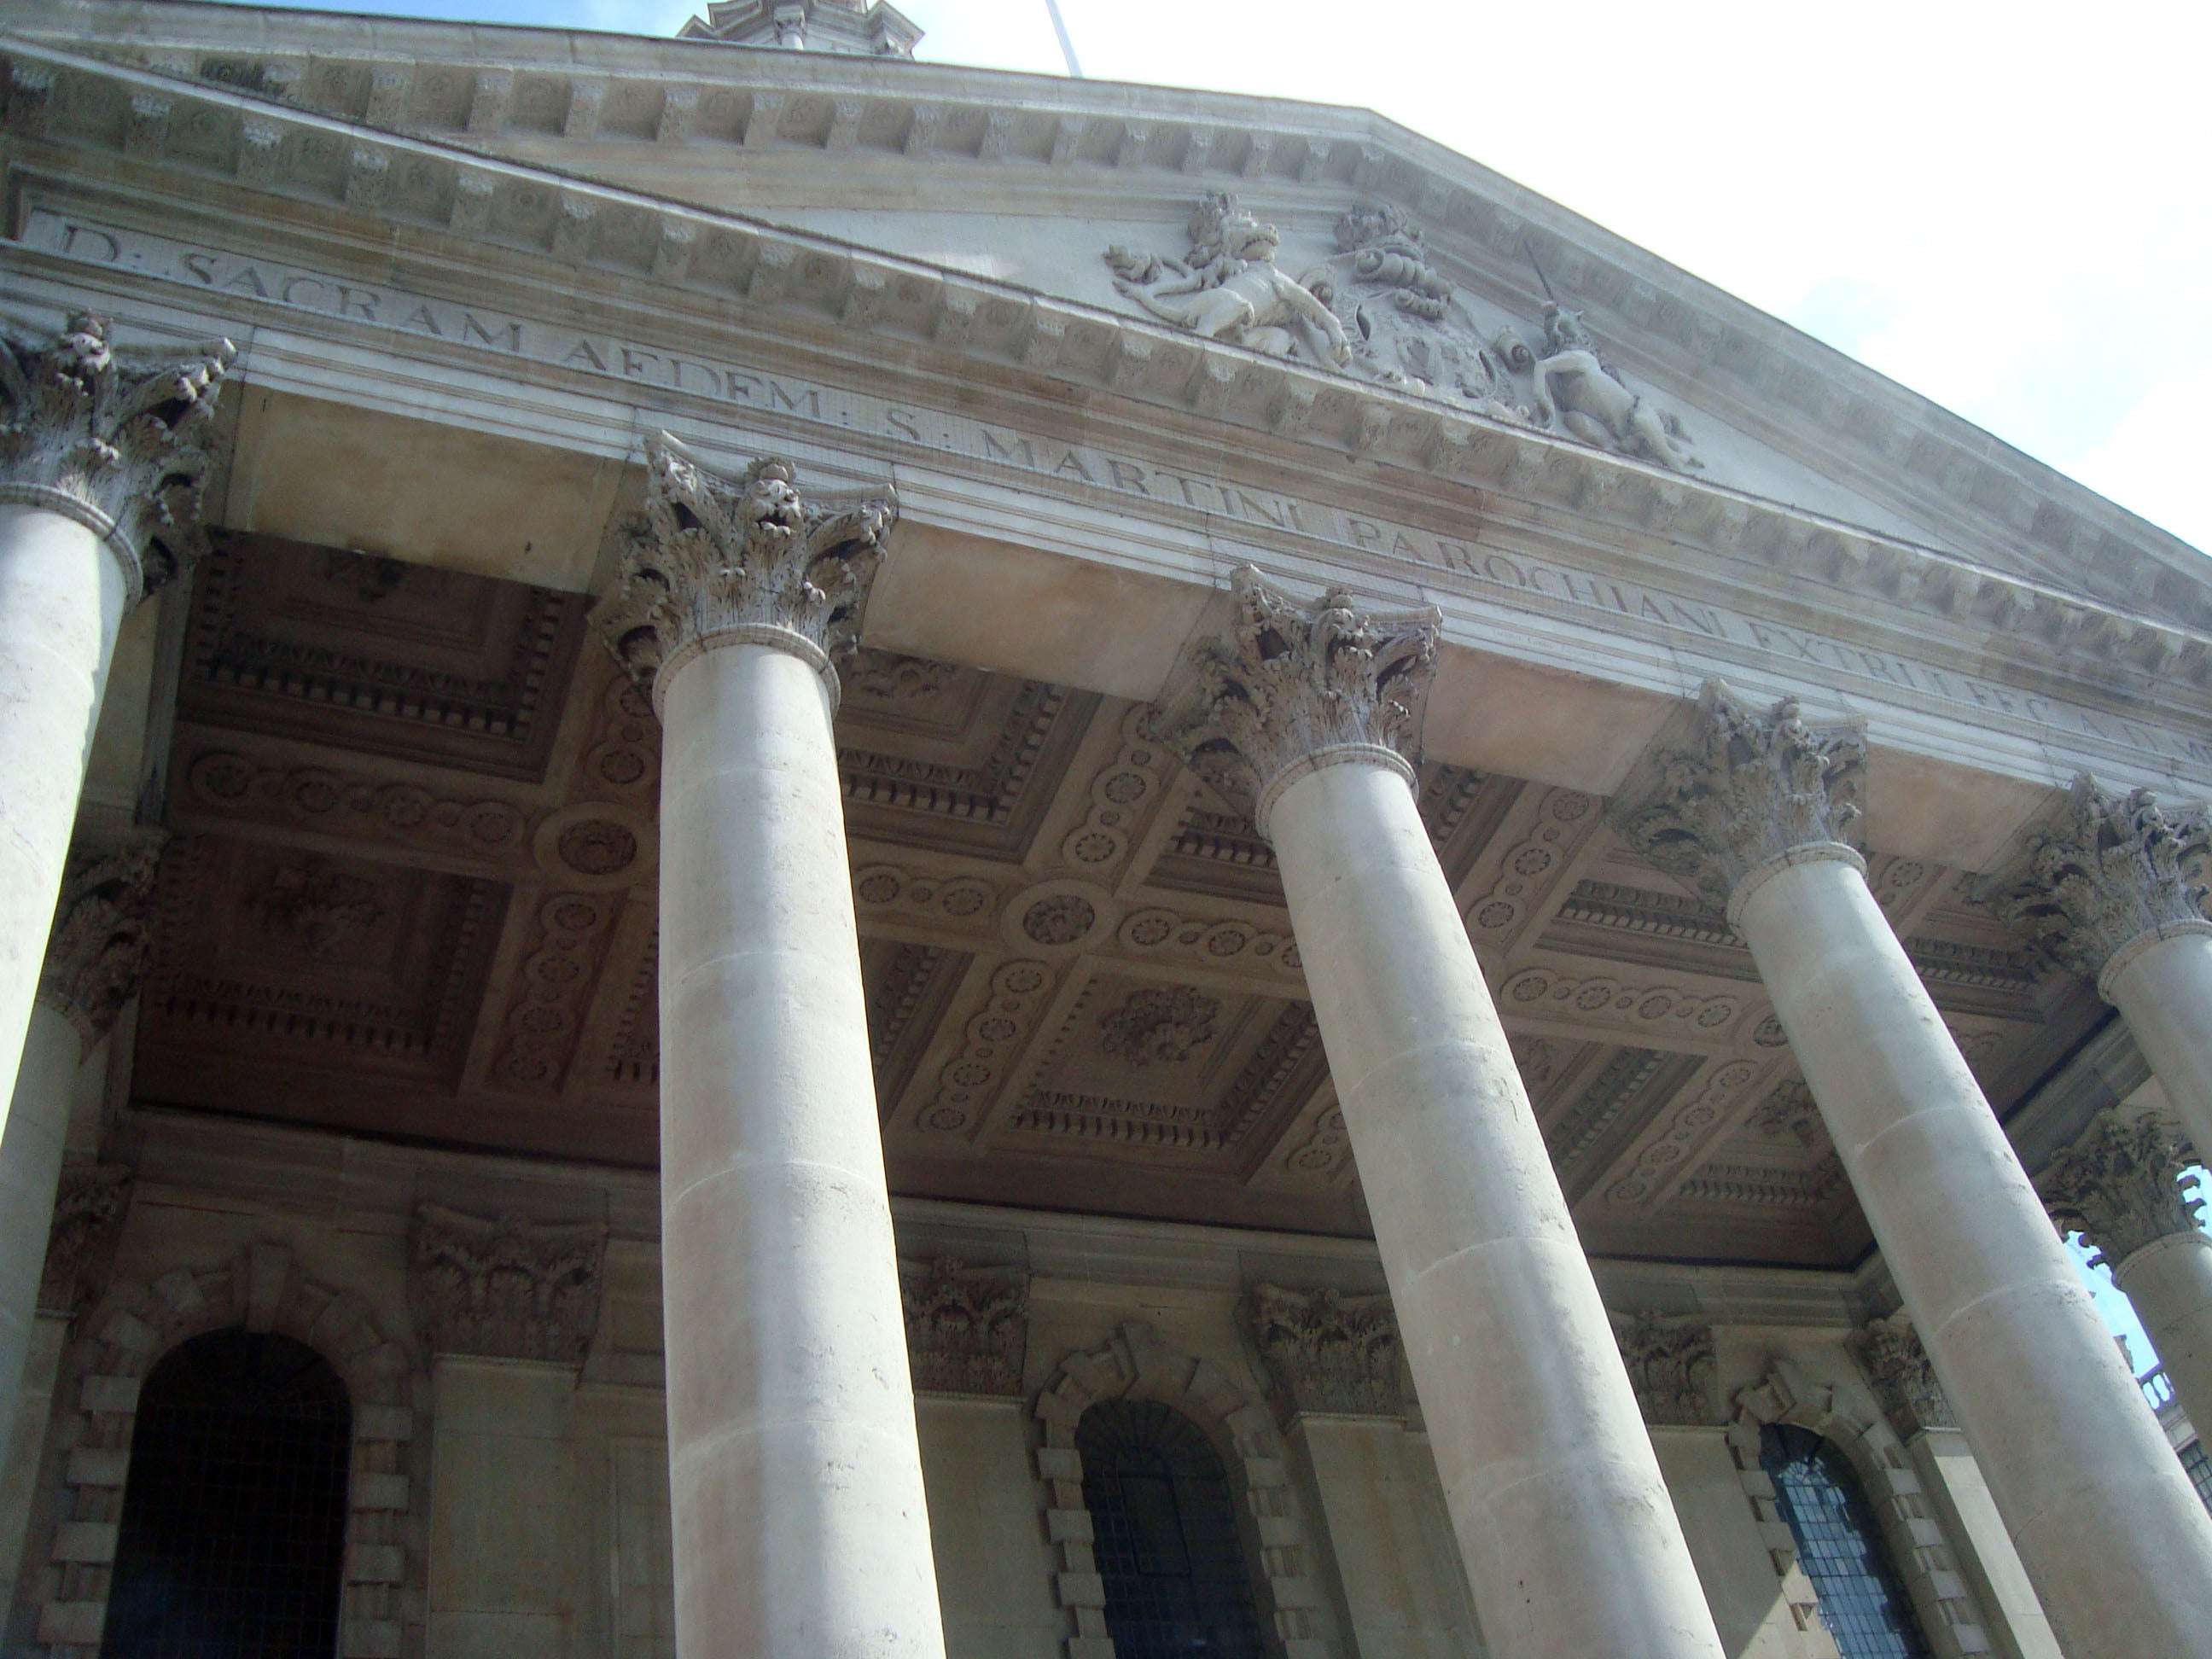 Columna en St Martin-in-the-Fields